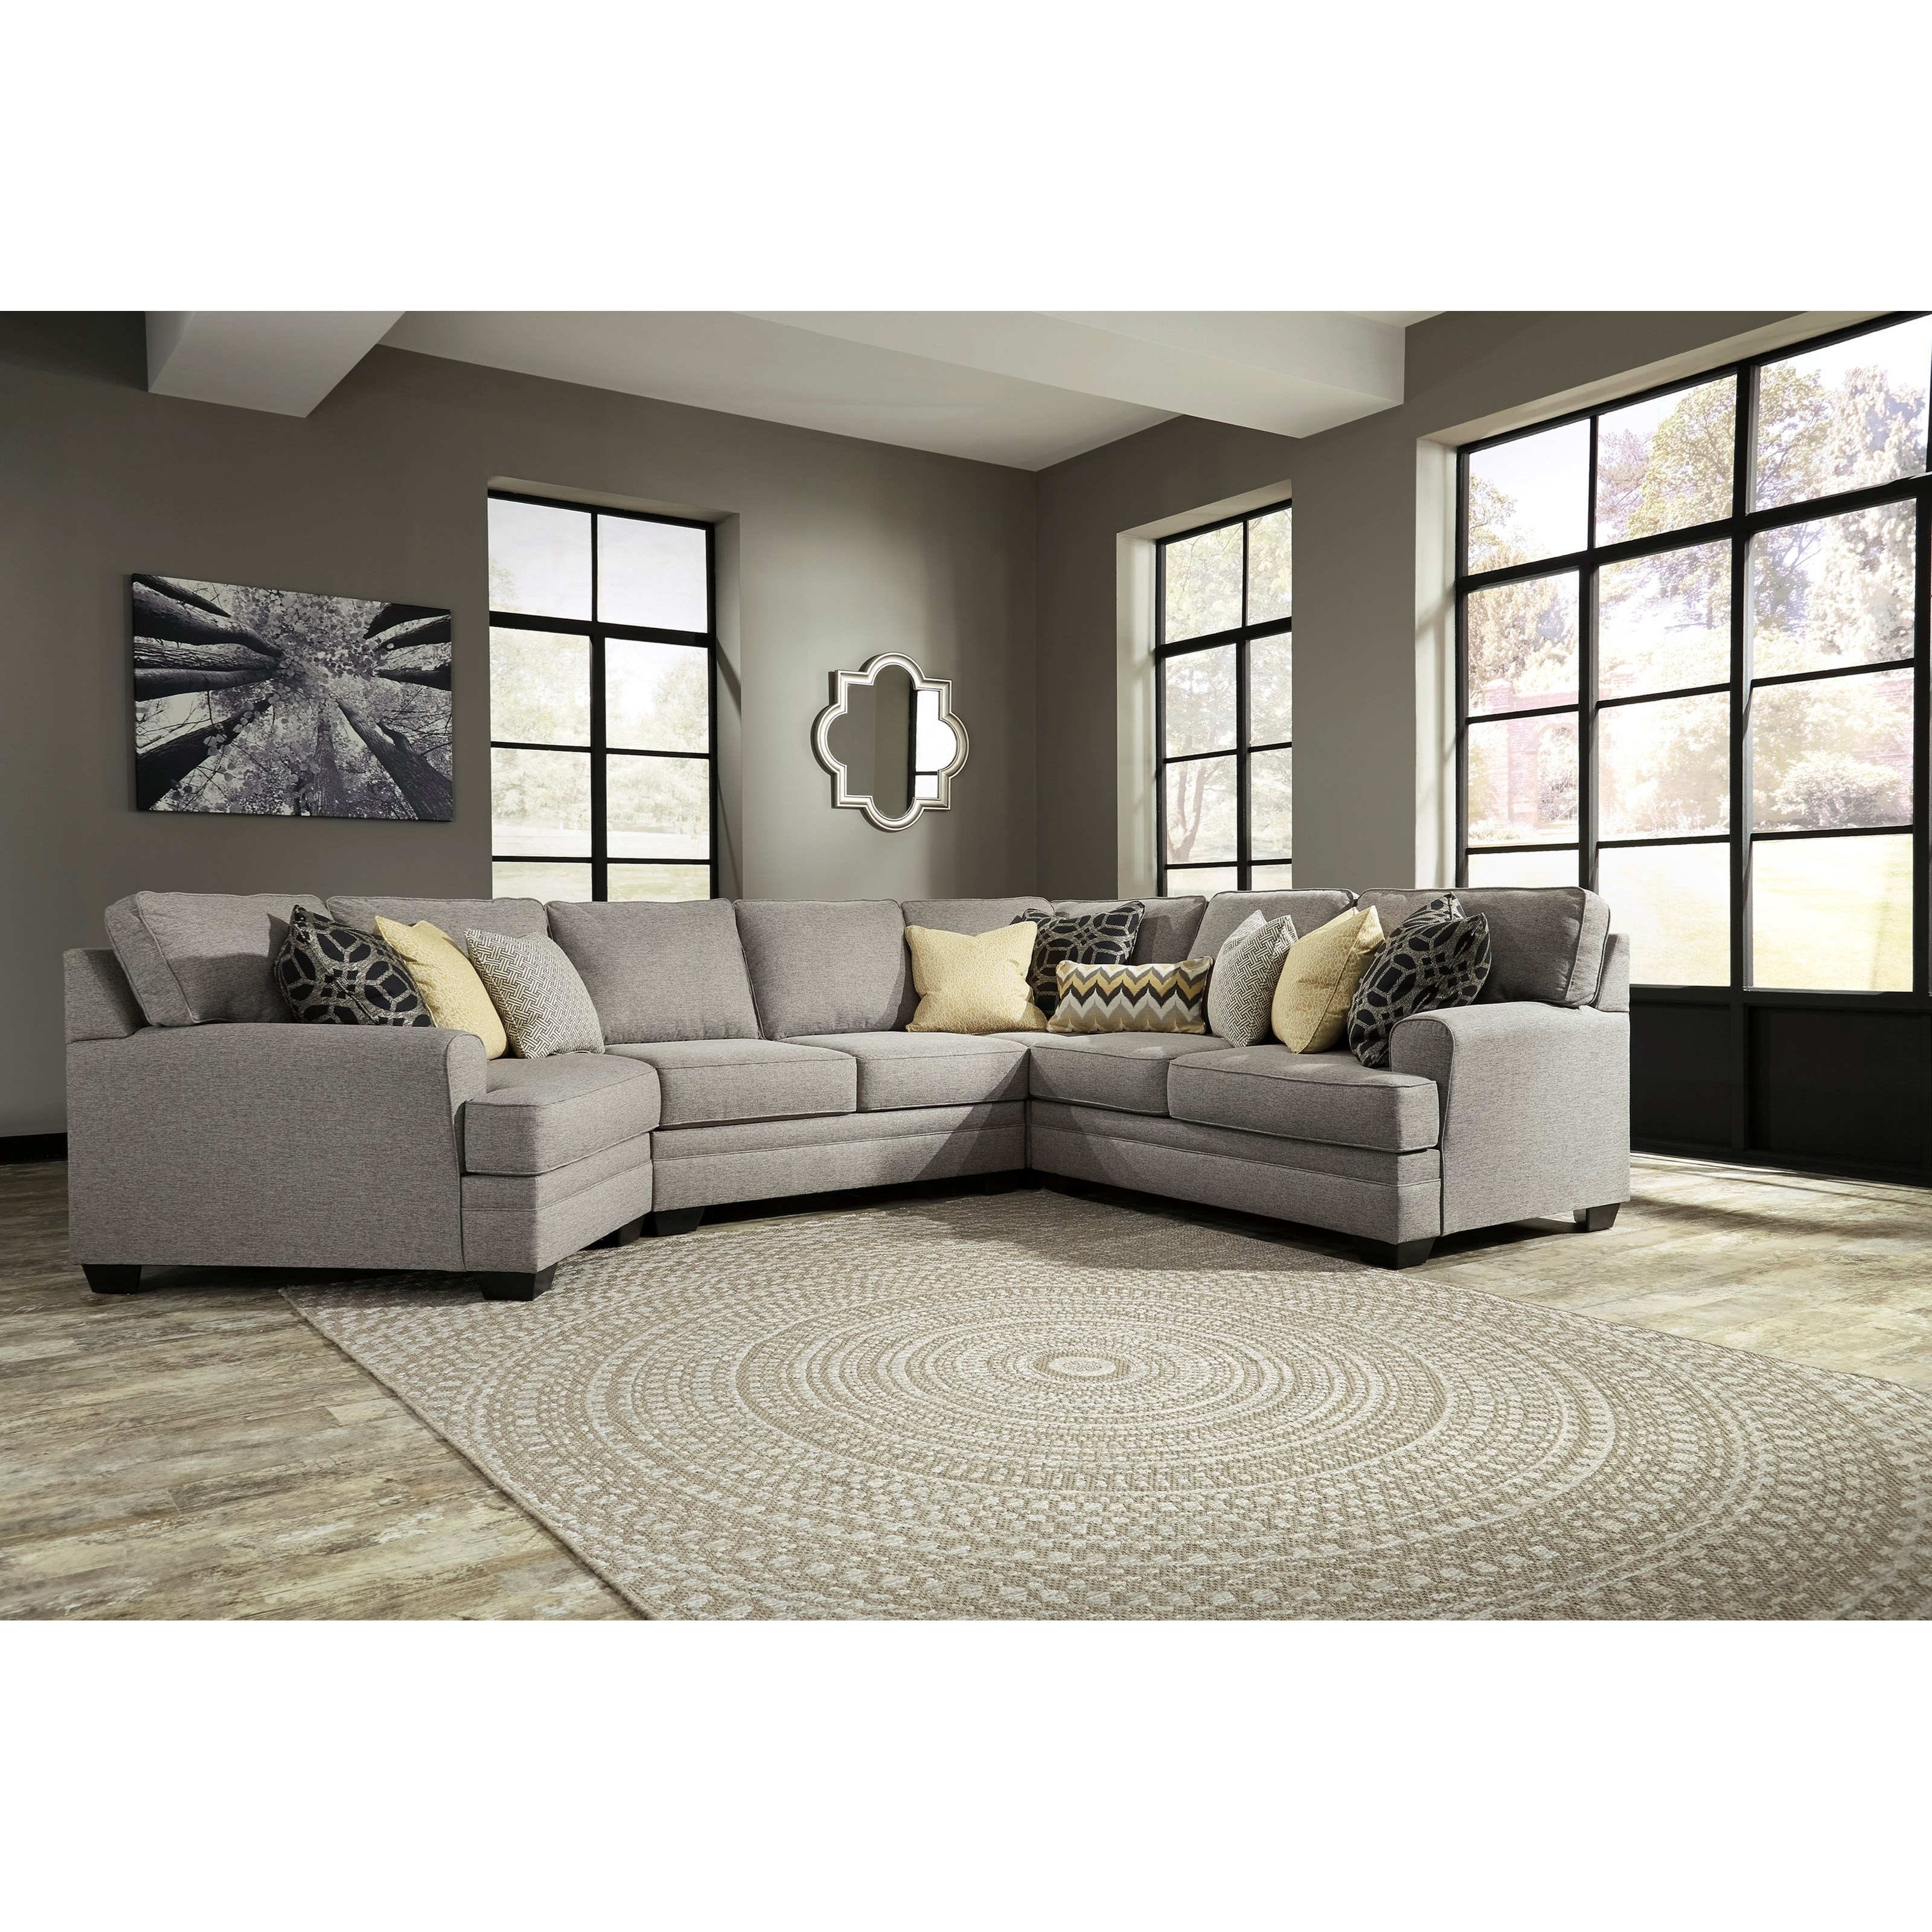 Benchcraft Cresson Contemporary 4 Piece Sectional With Cuddler Intended For Most Up To Date Cuddler Sectional Sofas (View 18 of 20)